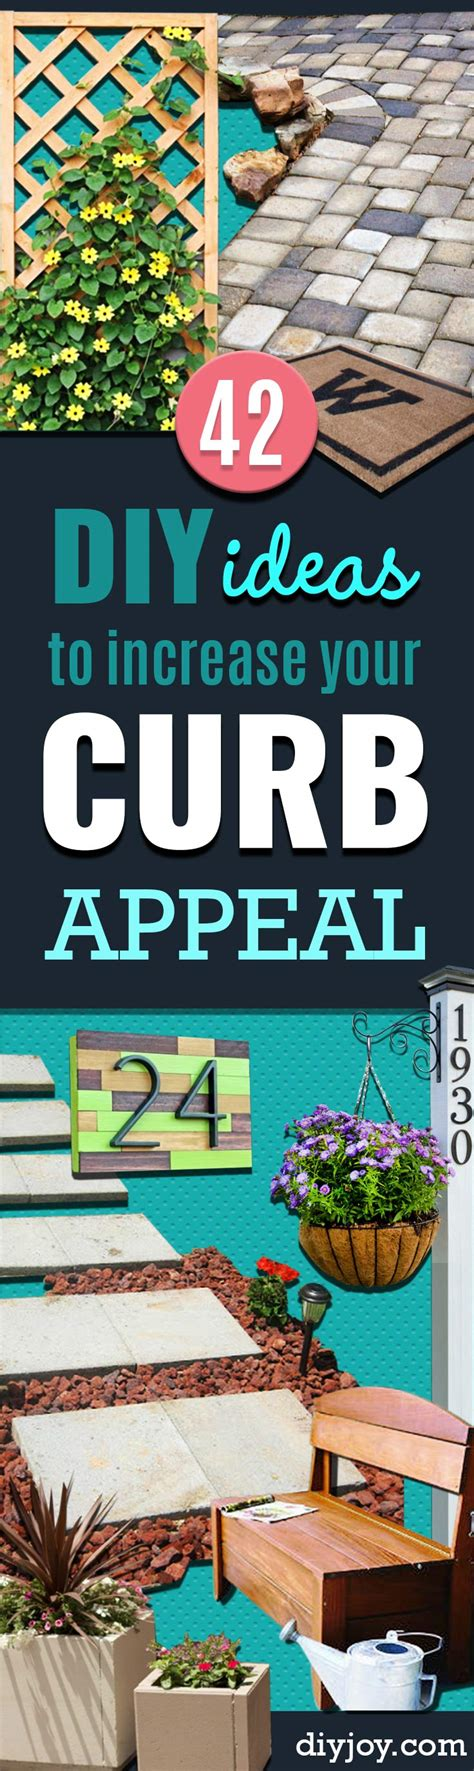 diy ideas  increase curb appeal